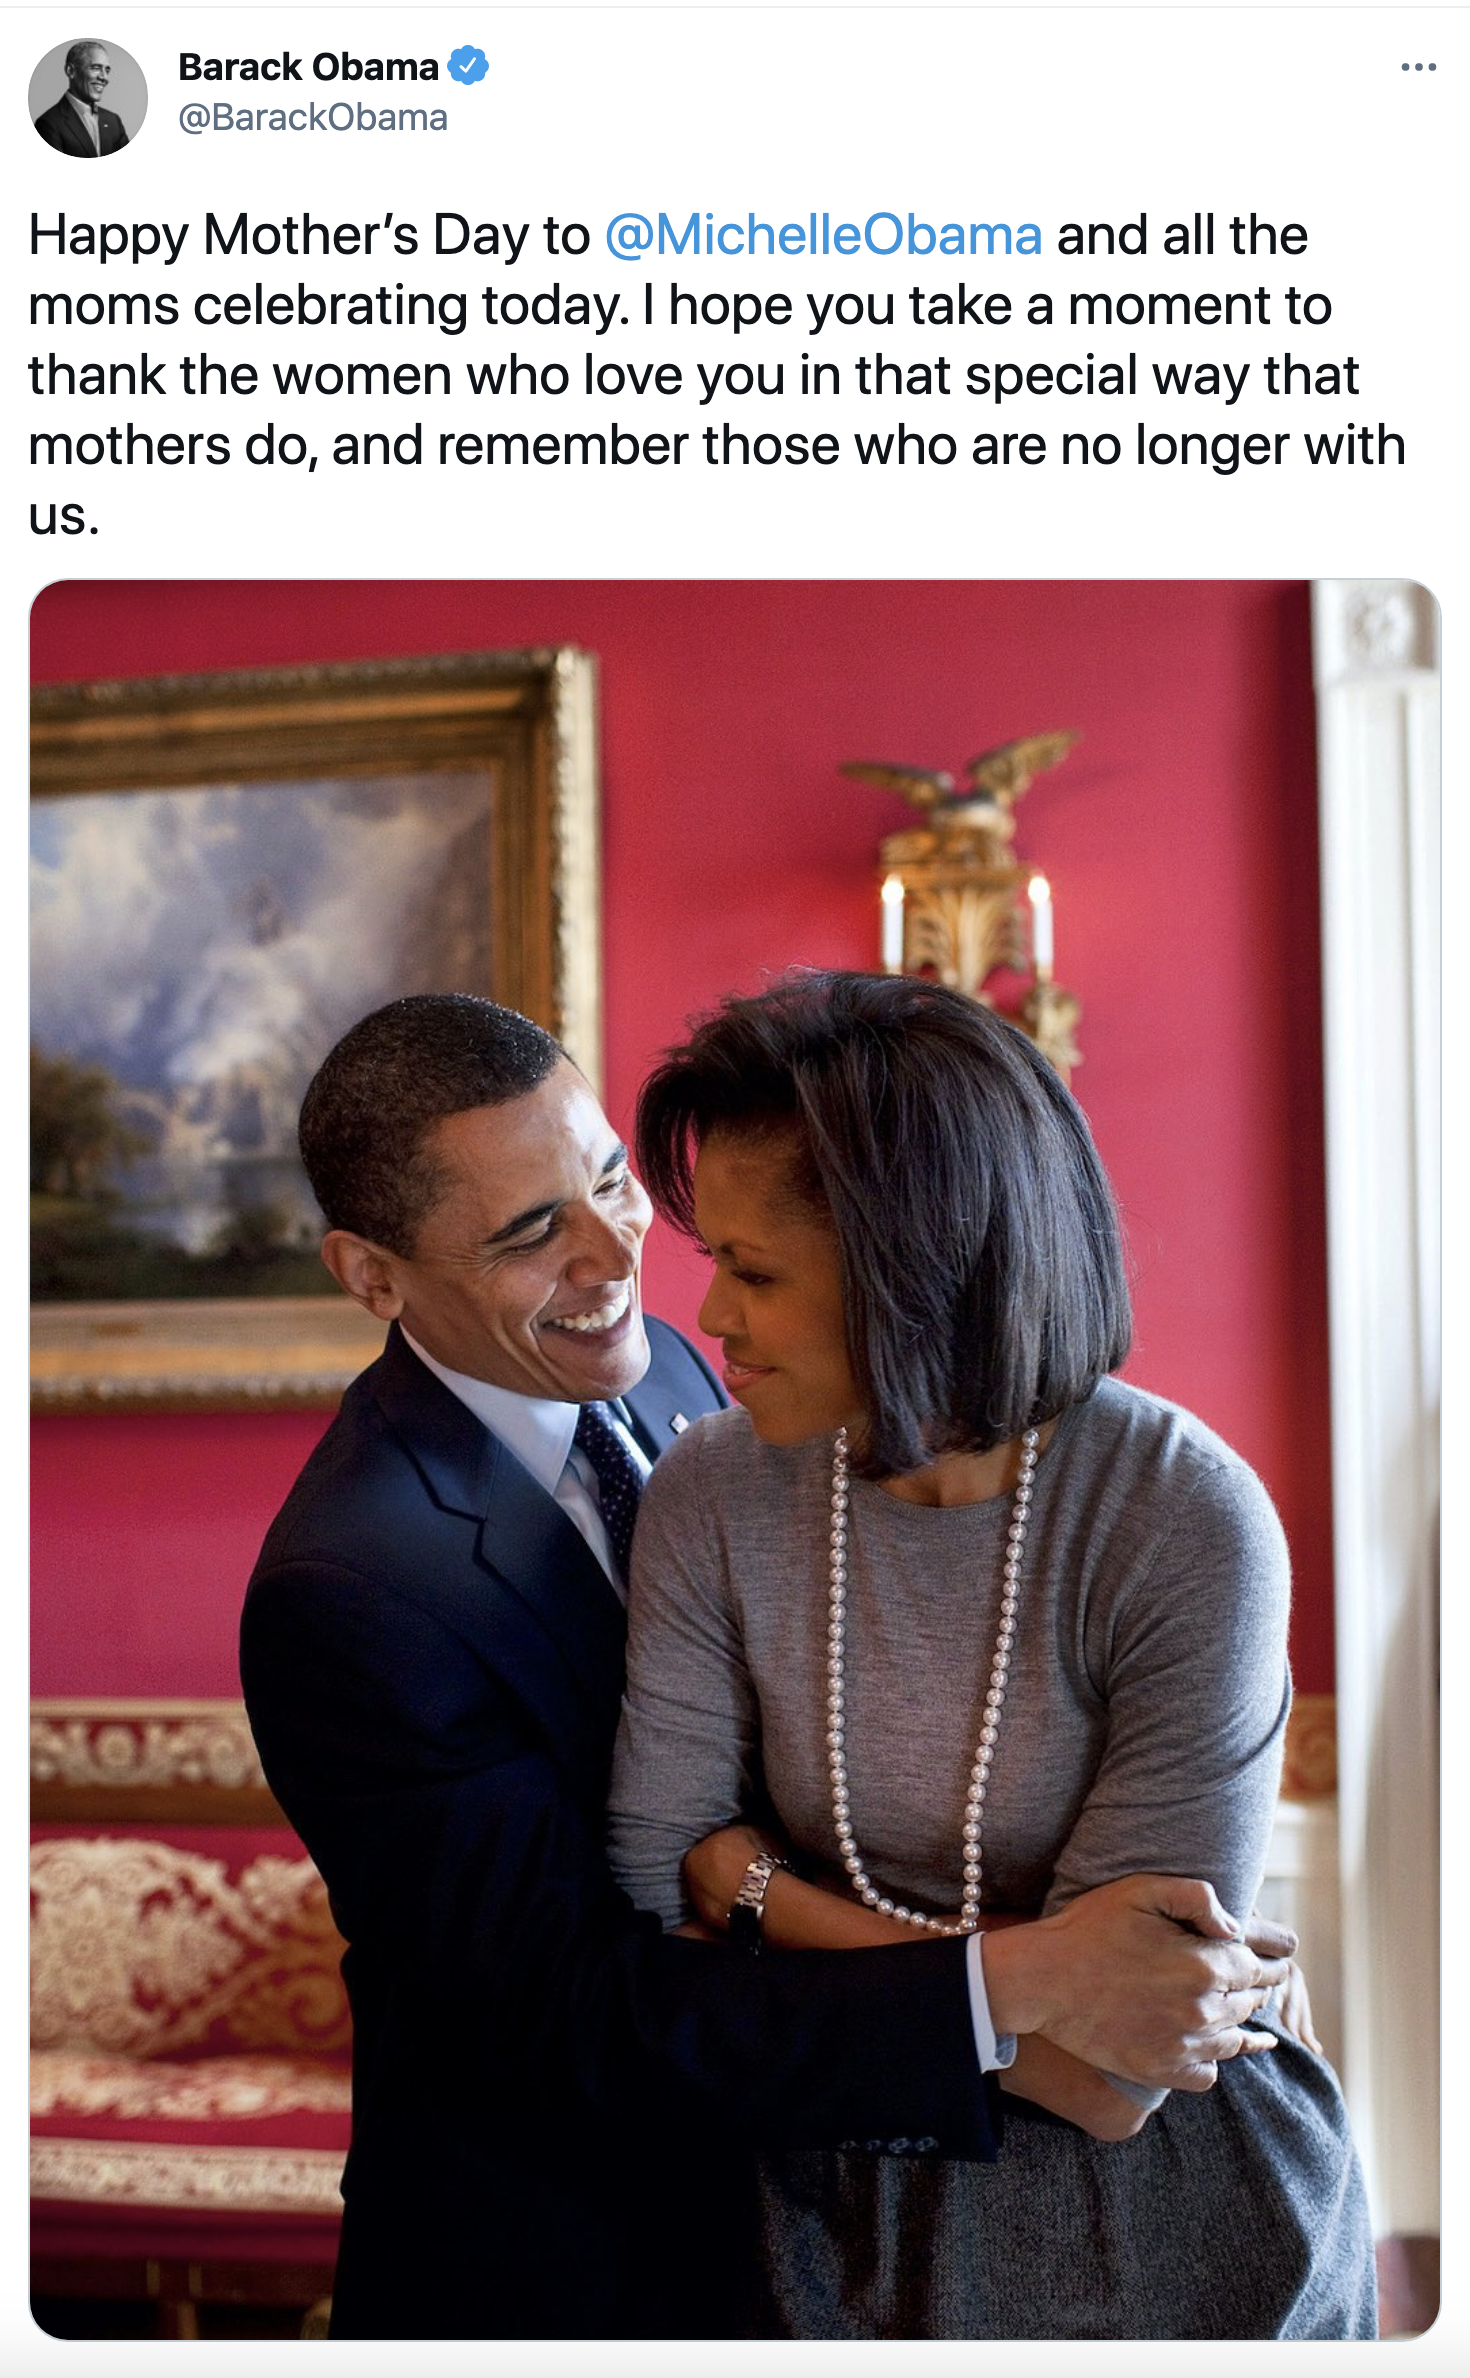 Screen-Shot-2021-05-09-at-10.44.58-AM The Obamas Celebrate Mothers Day With Display Of Public Love Featured Feminism Politics Top Stories Women's Rights